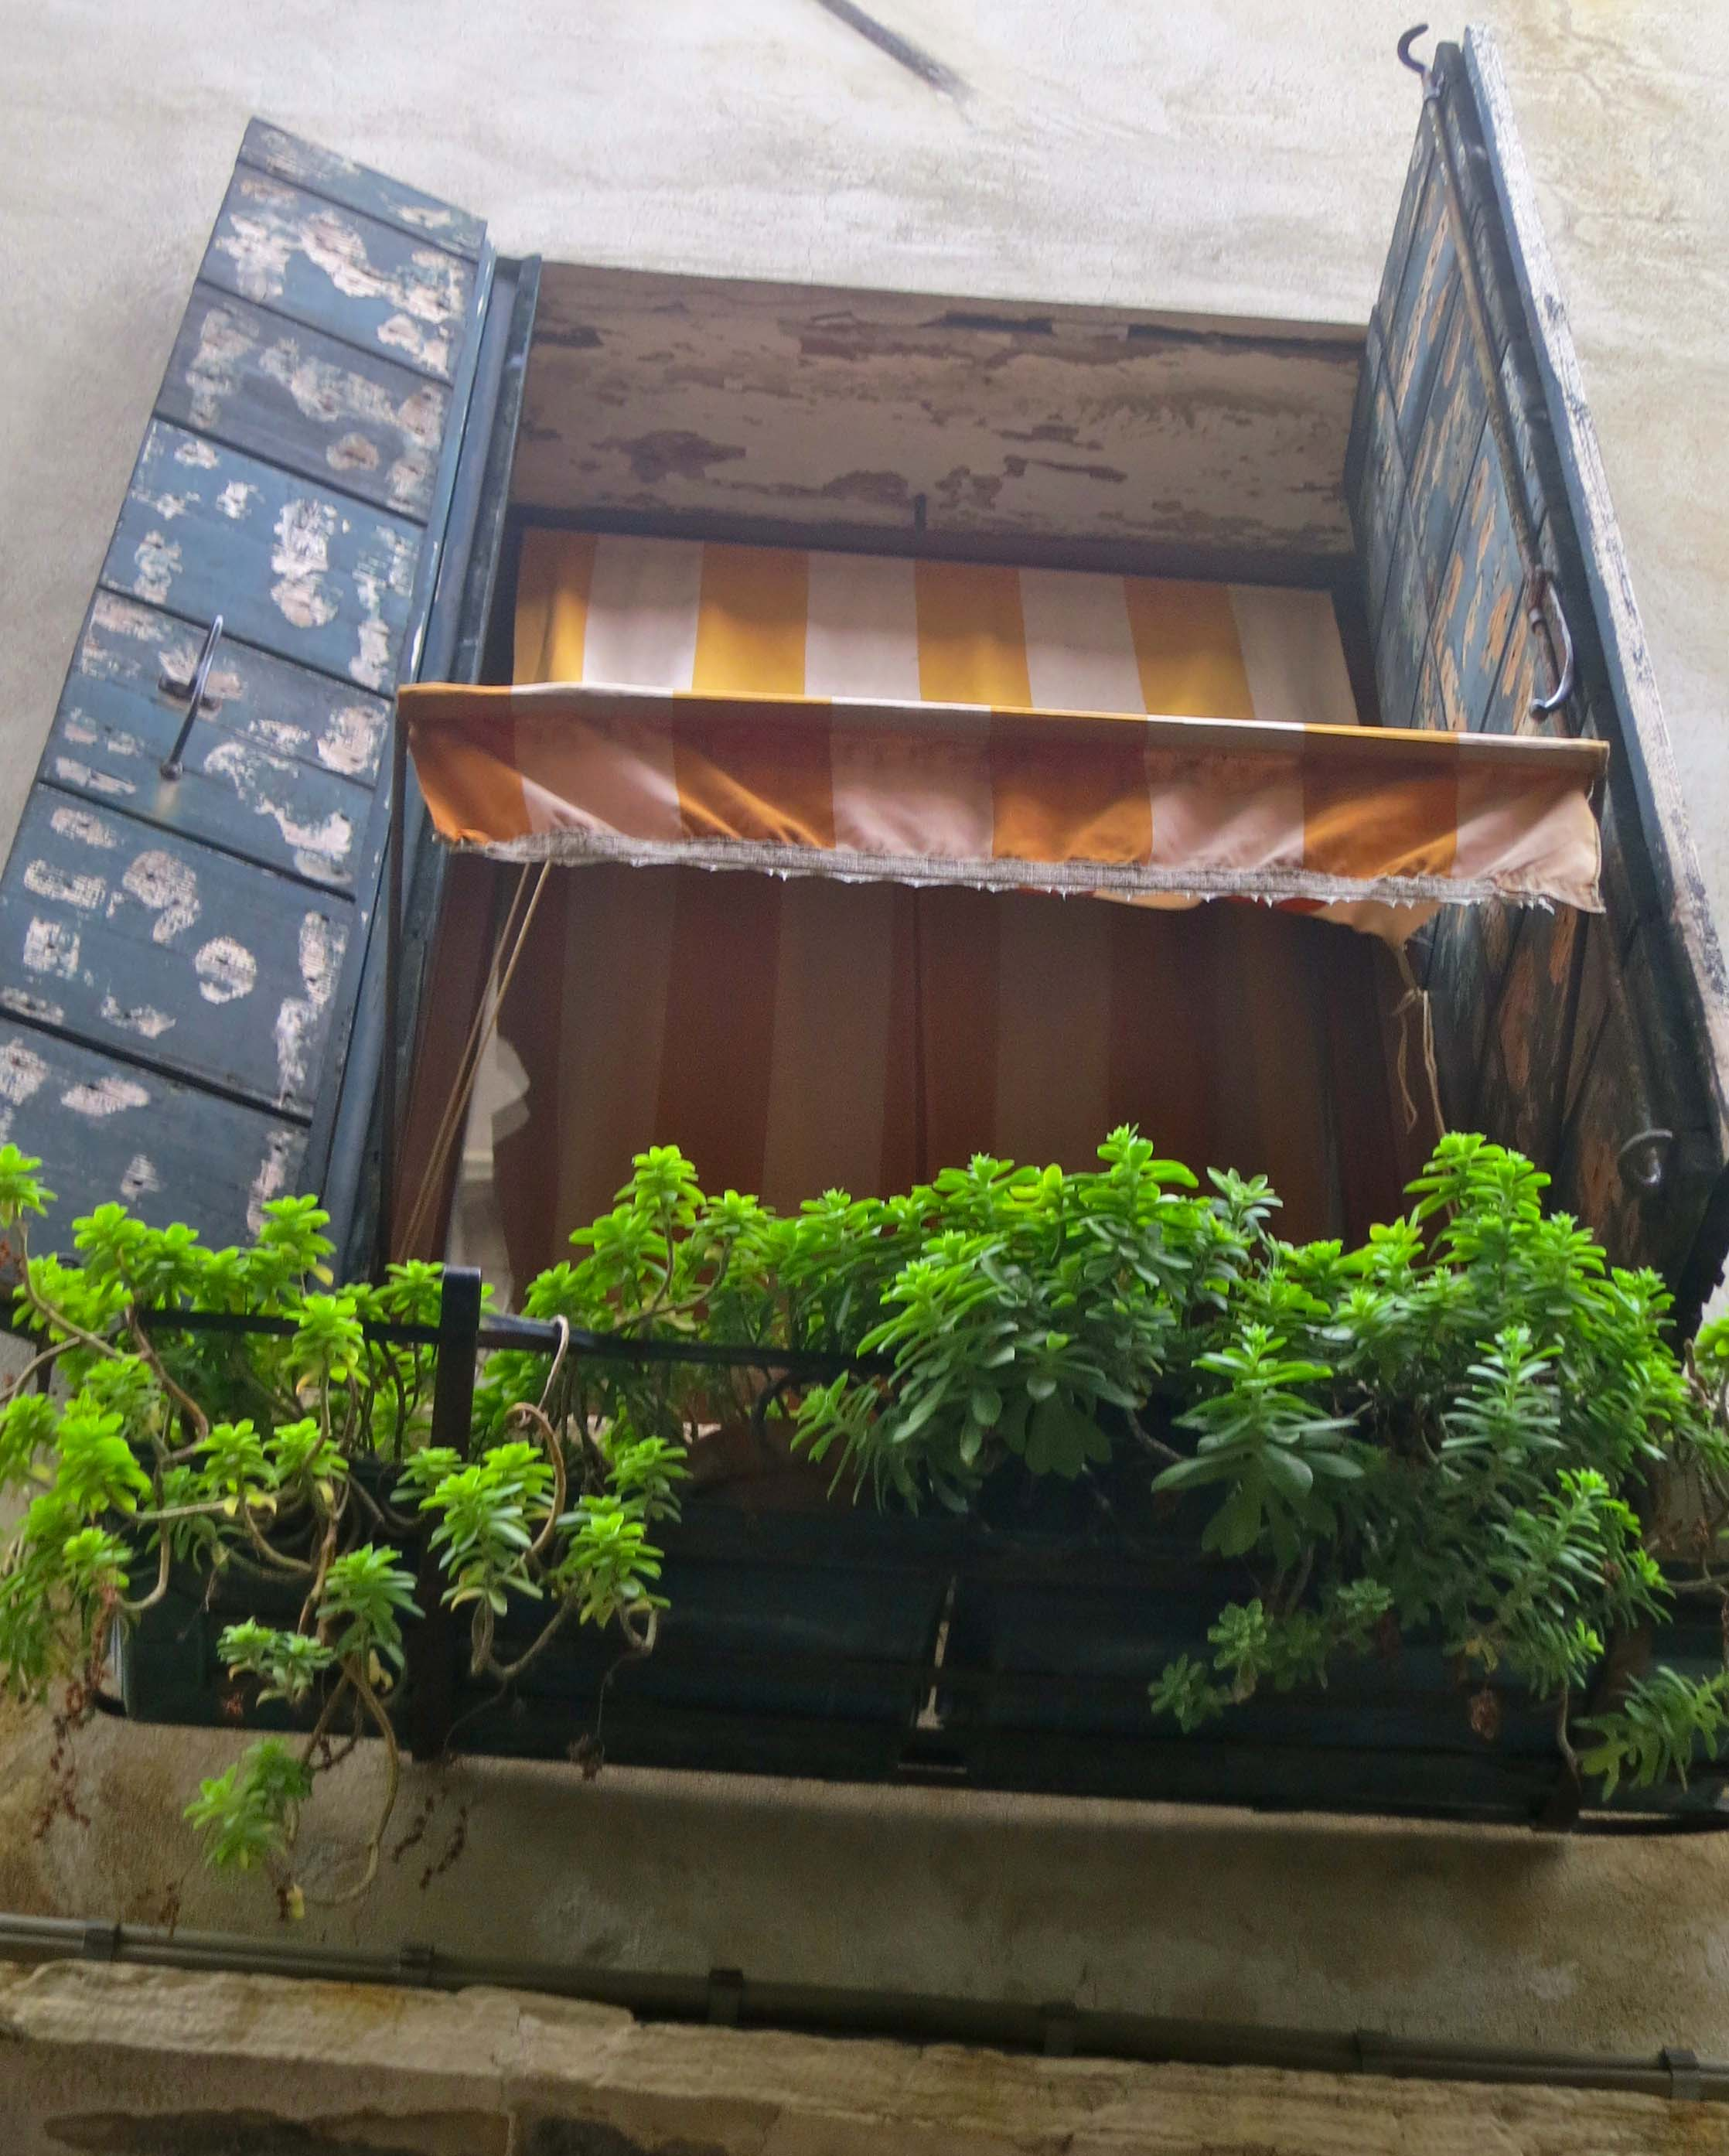 Colorful flower box in Venice Italy.